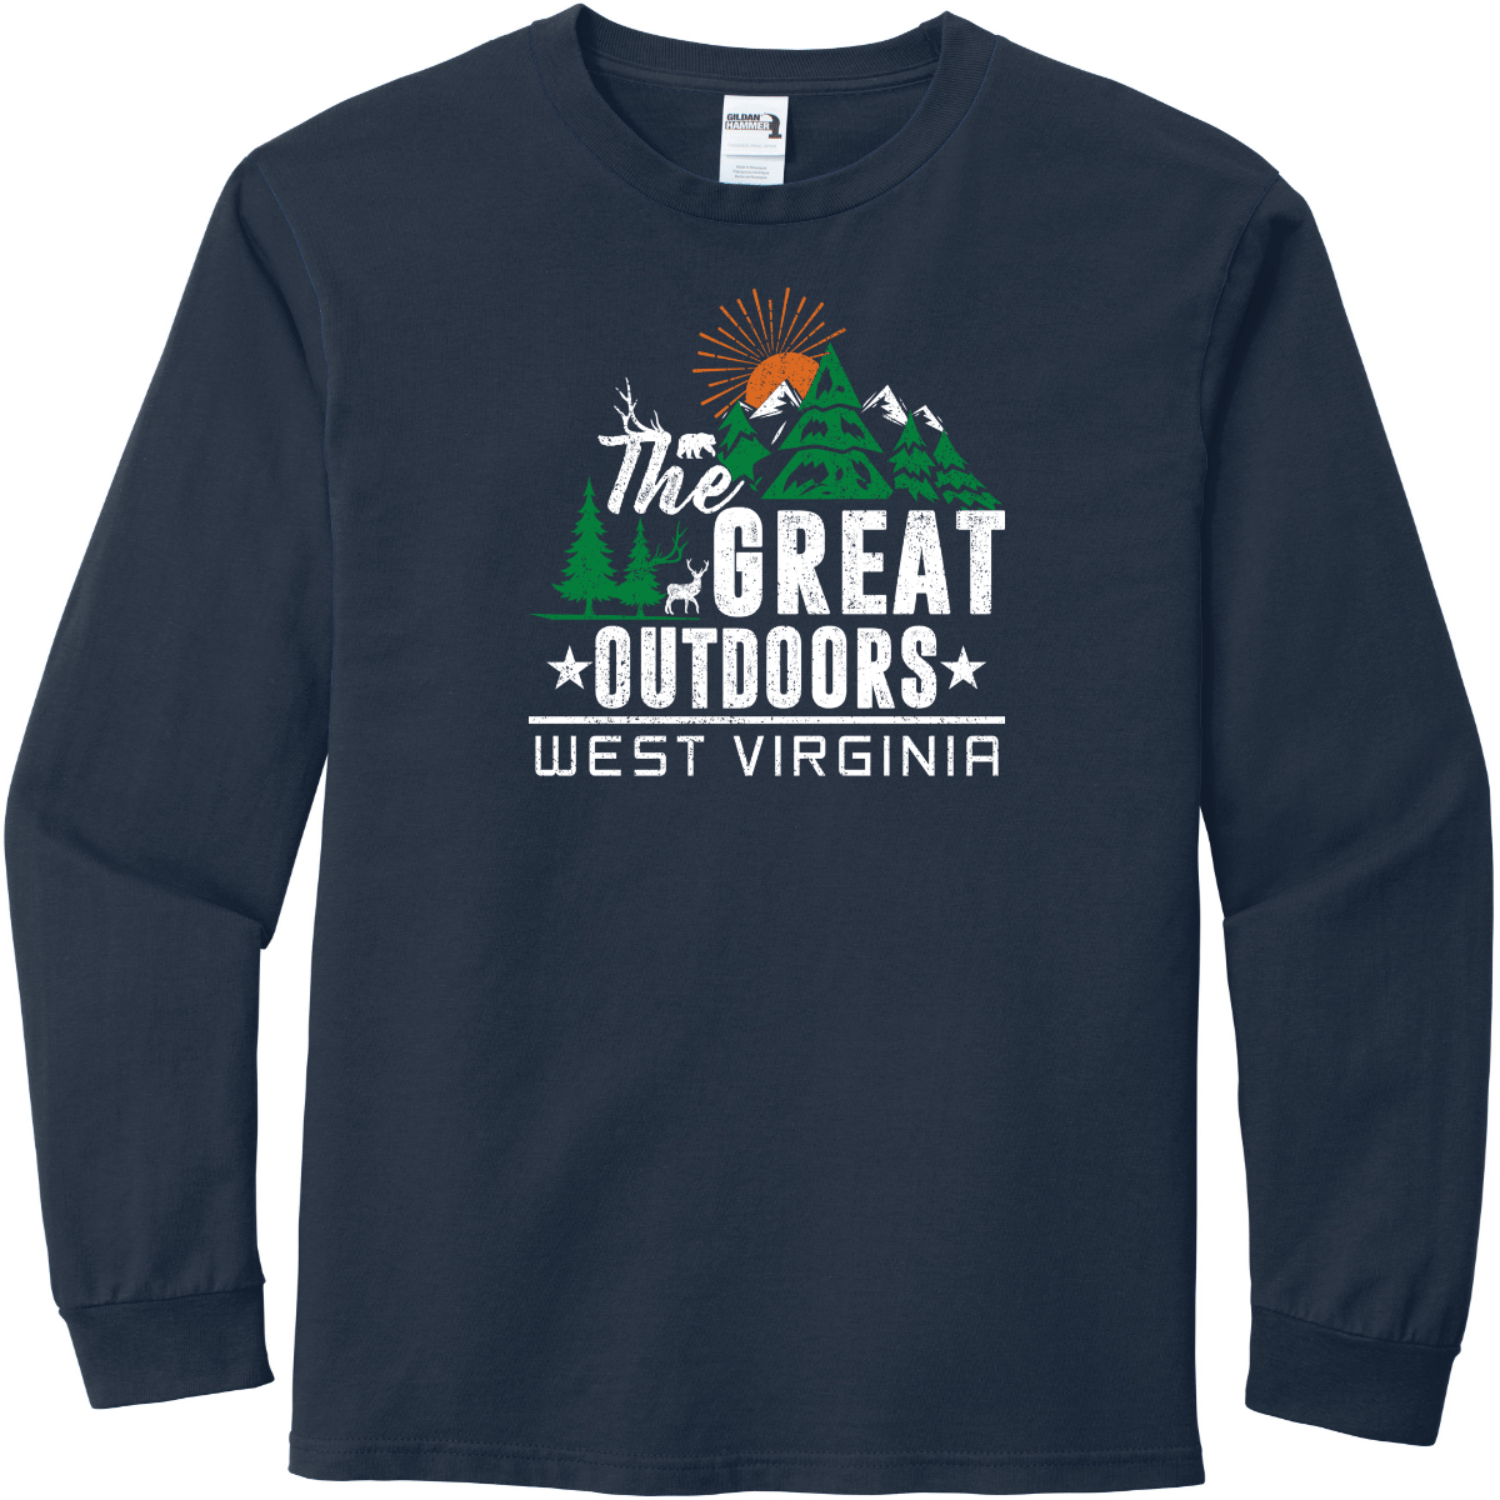 The Great Outdoors West Virginia Long Sleeve T-Shirt Sport Dark Navy Gildan Hammer Long Sleeve T Shirt